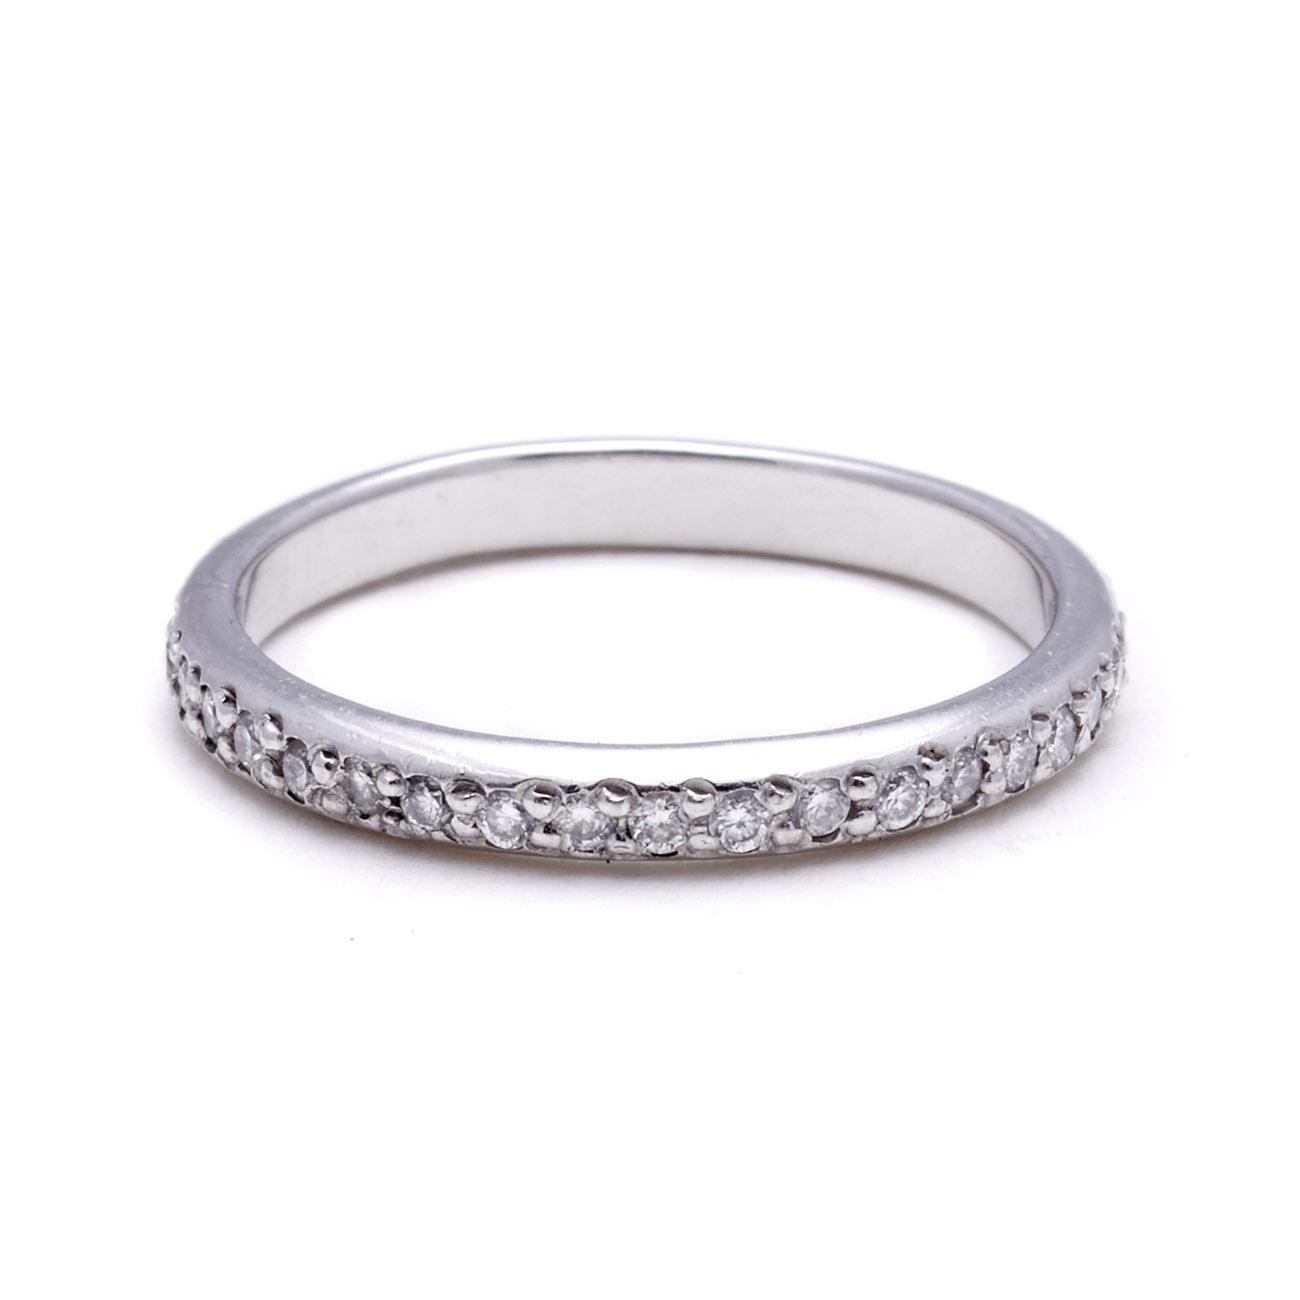 jeweler band bridge ben jewelry eternity diamond ctw